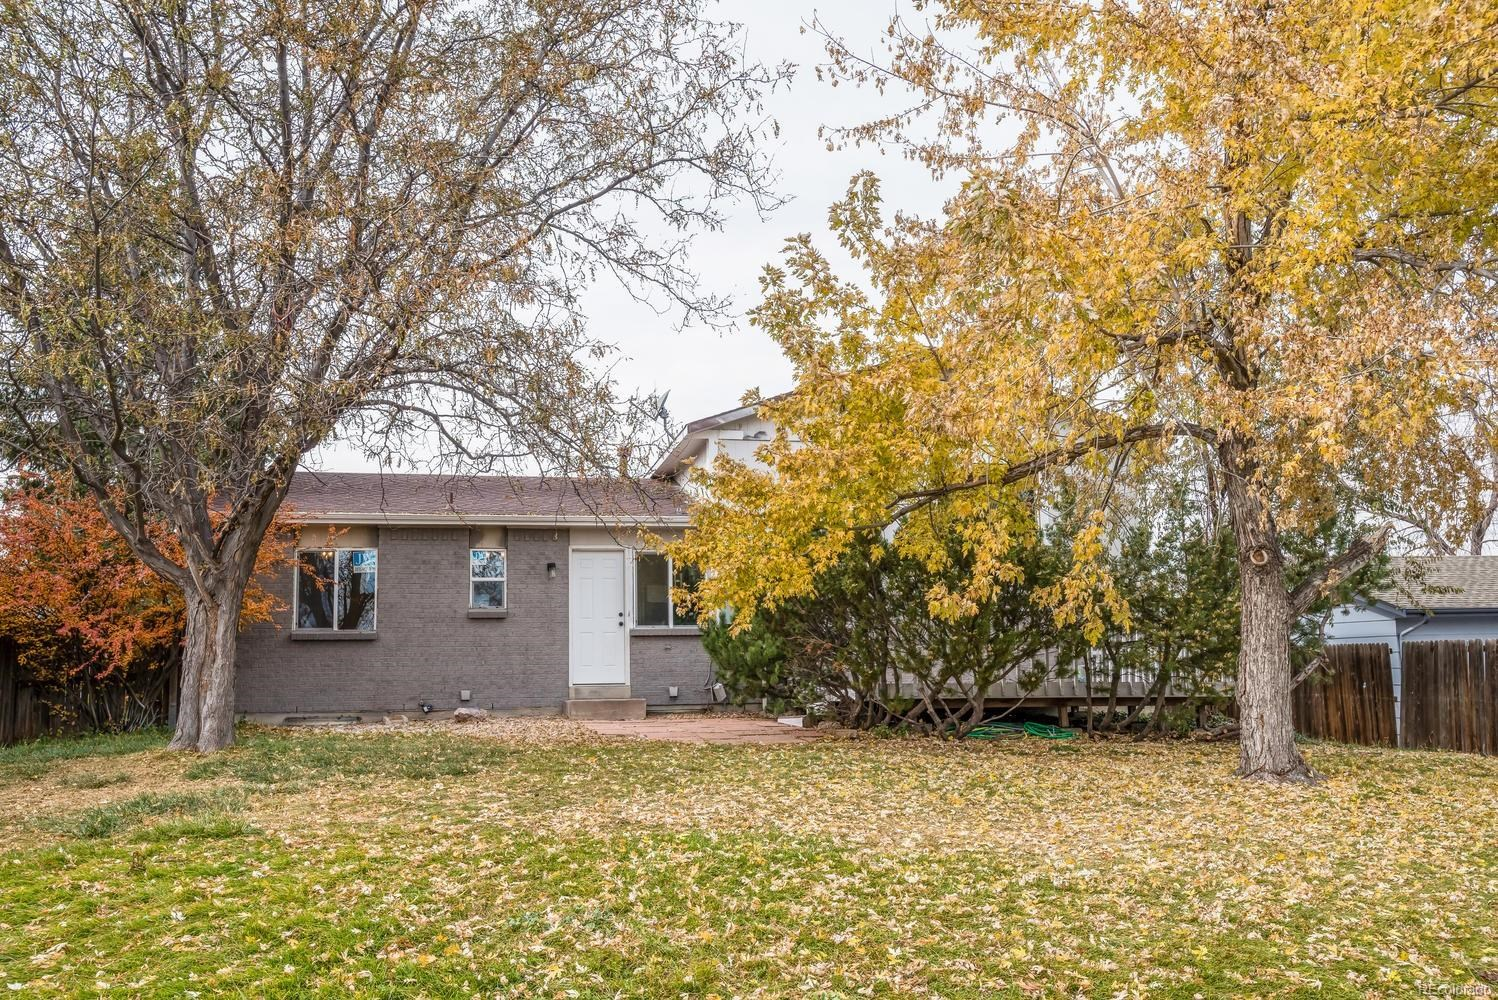 MLS# 3309696 - 7630  S Garland Street, Littleton, CO 80128